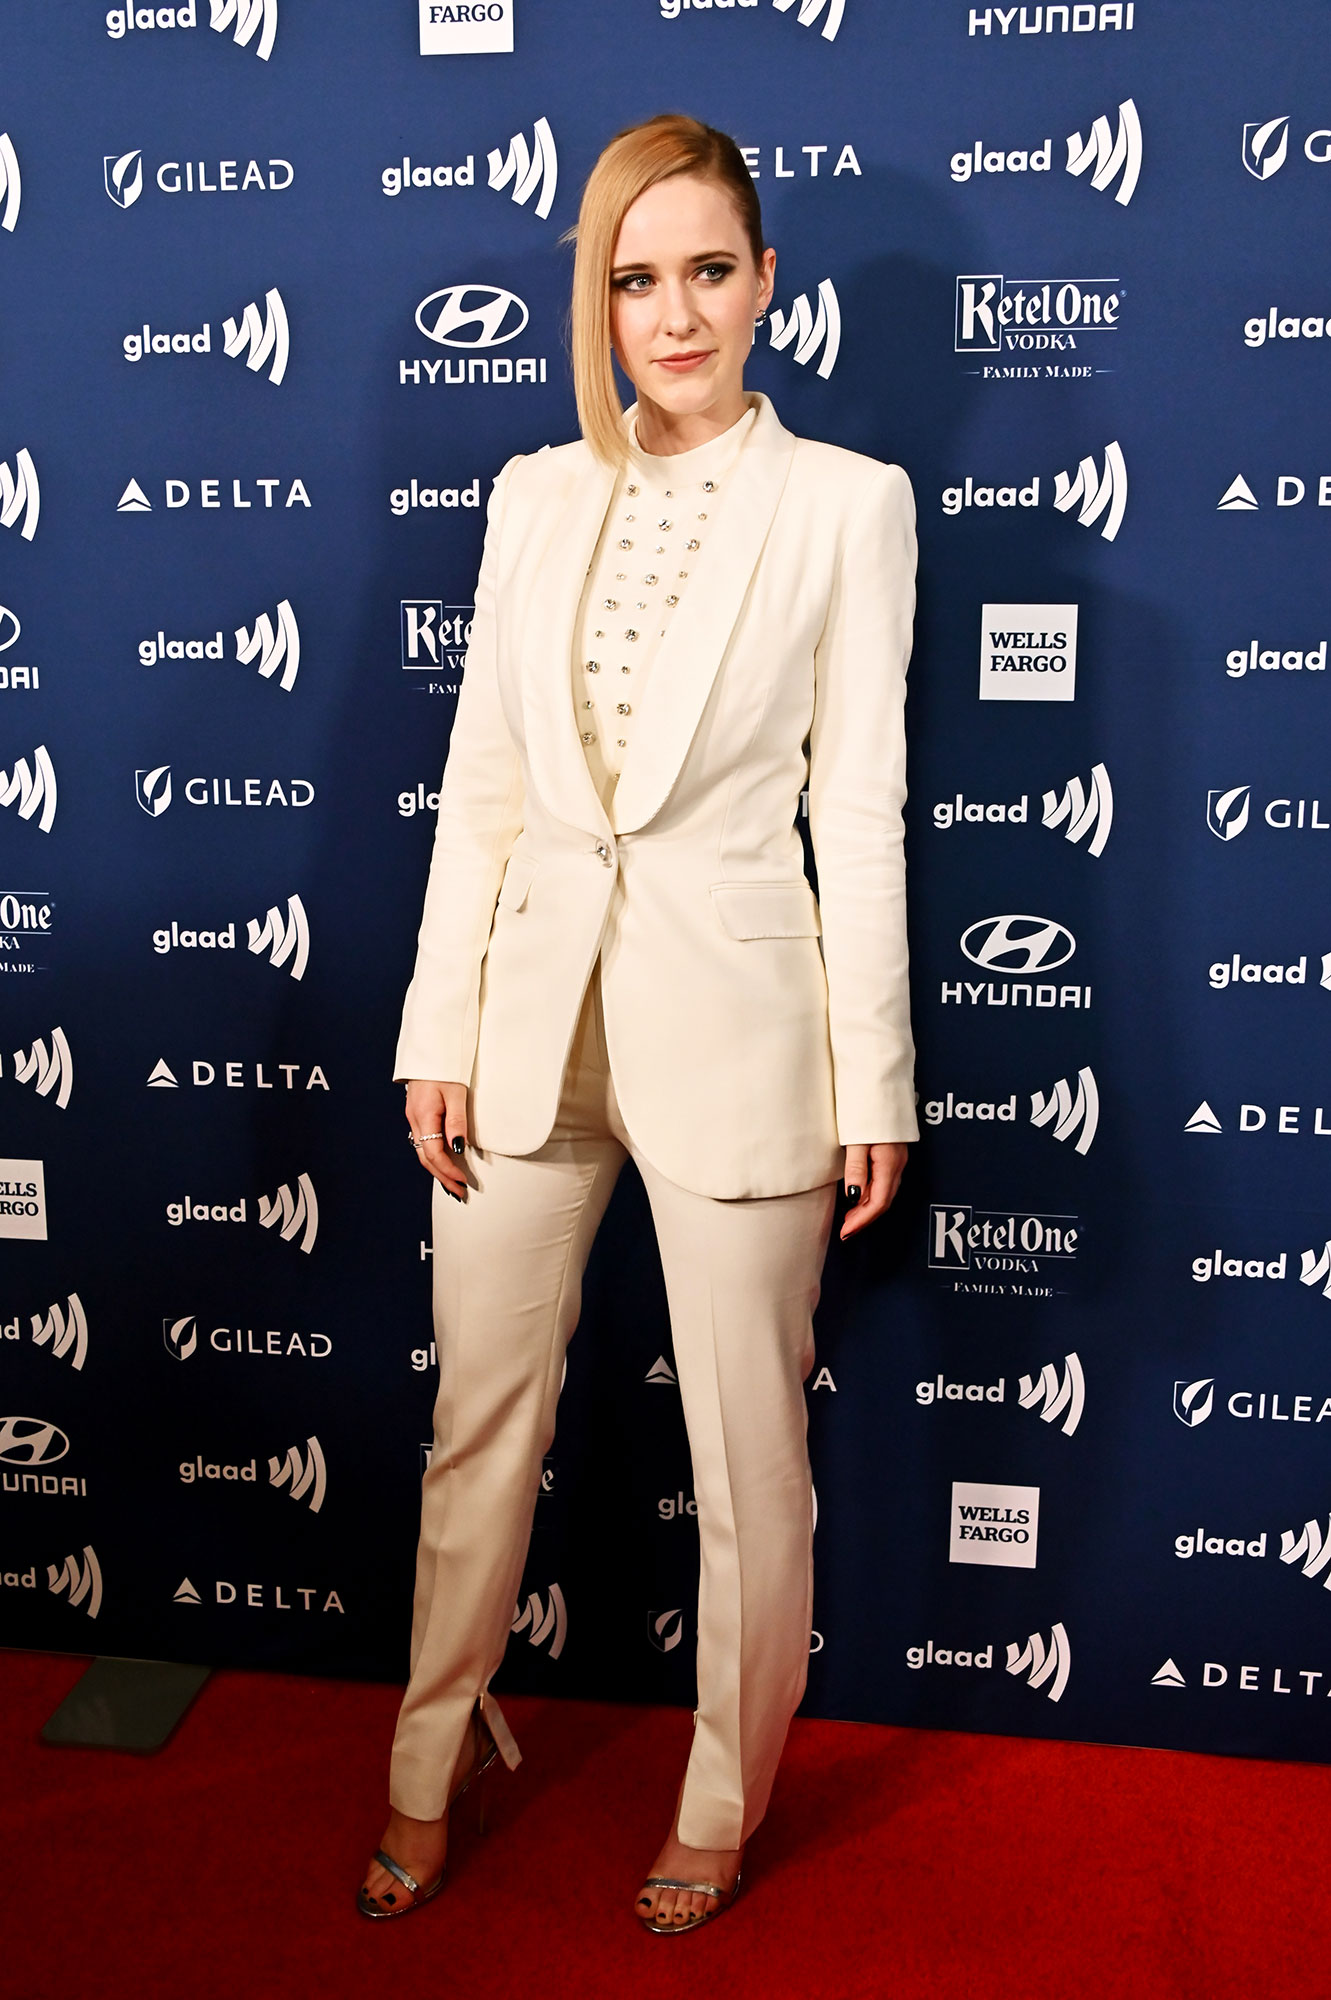 See the Stars at the GLAAD Awards Rachel Brosnahan - Wearing a white Ralph & Russo suit with Jimmy Choo sandals.